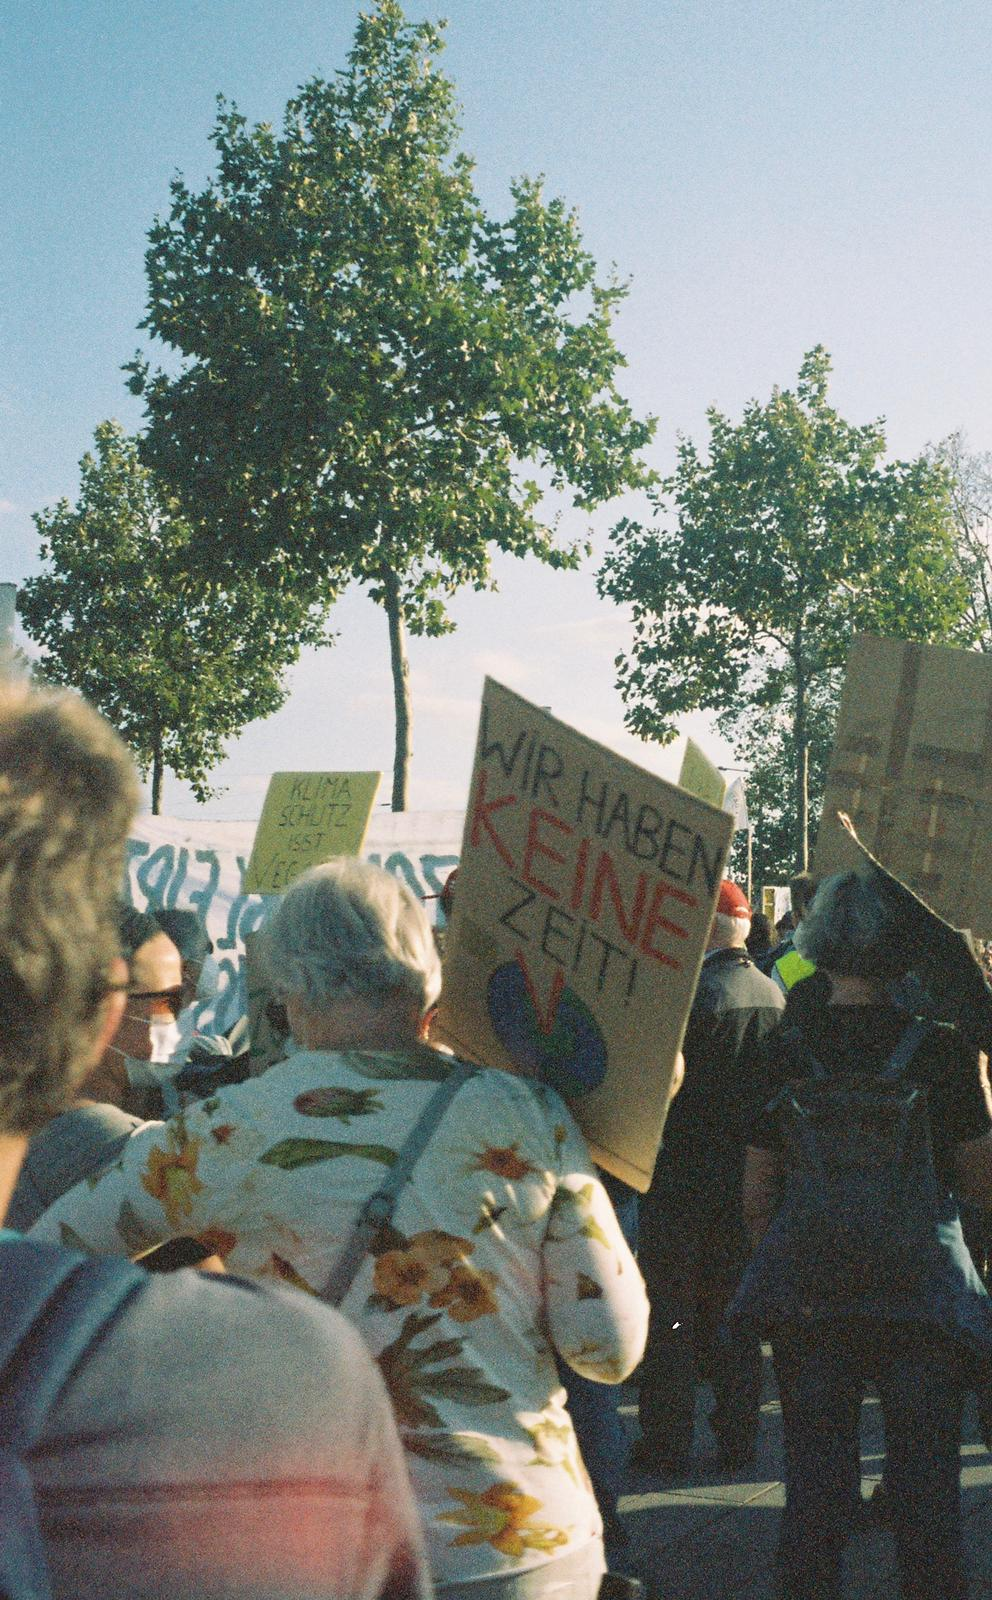 Picture taken by Emma Gallagher, Fridays For Future protest Mannheim